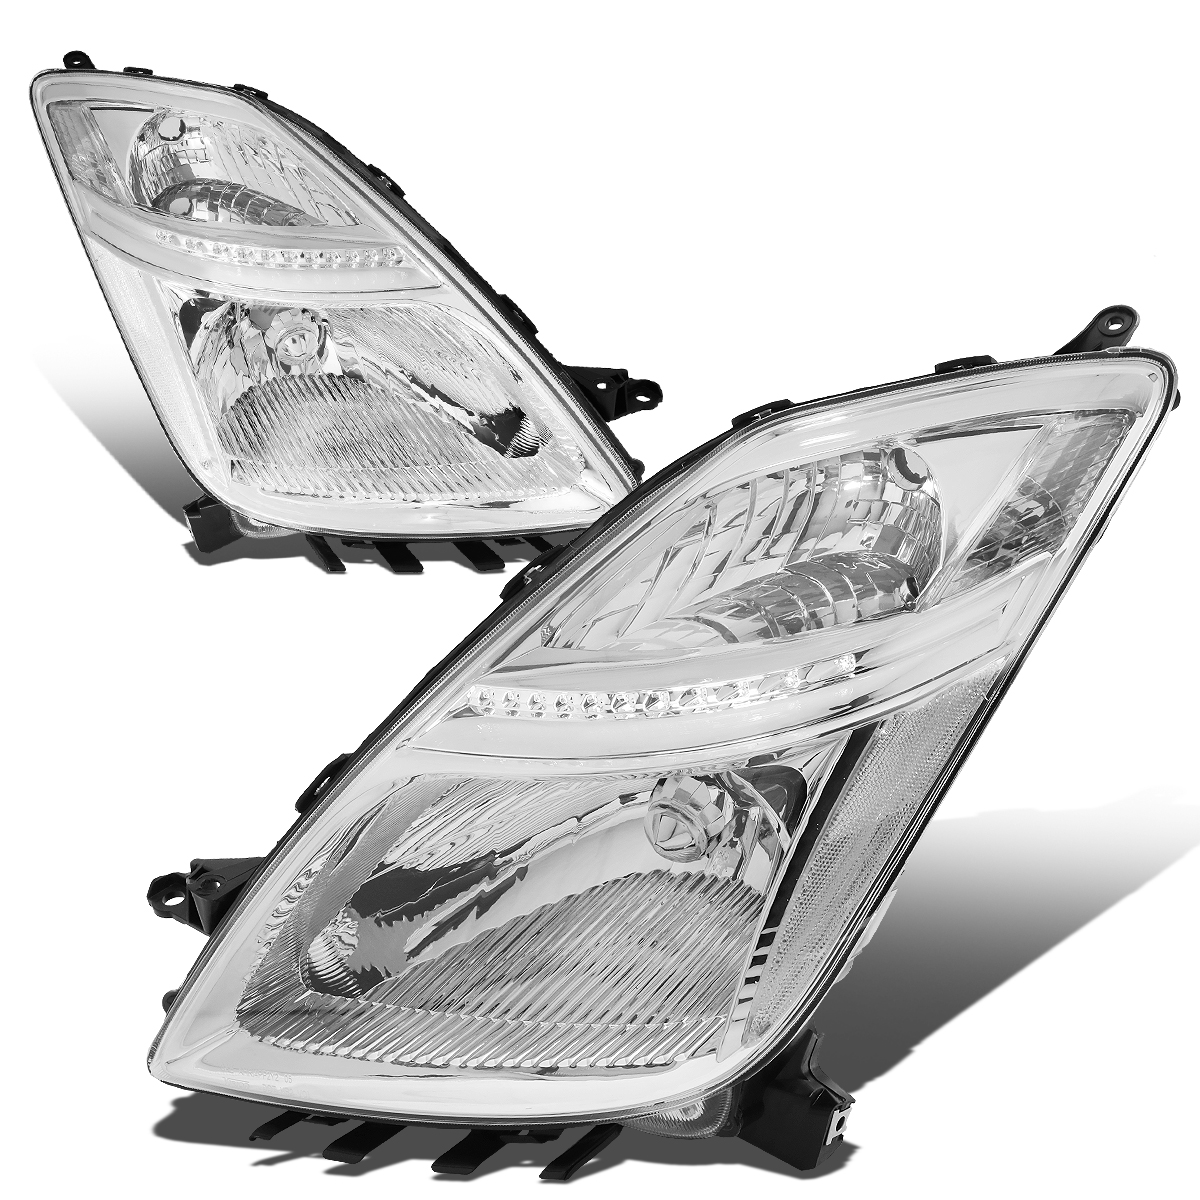 06 09 Toyota Prius Halogen Model Oe Style Replacement Headlights Chrome Click To Enlarge